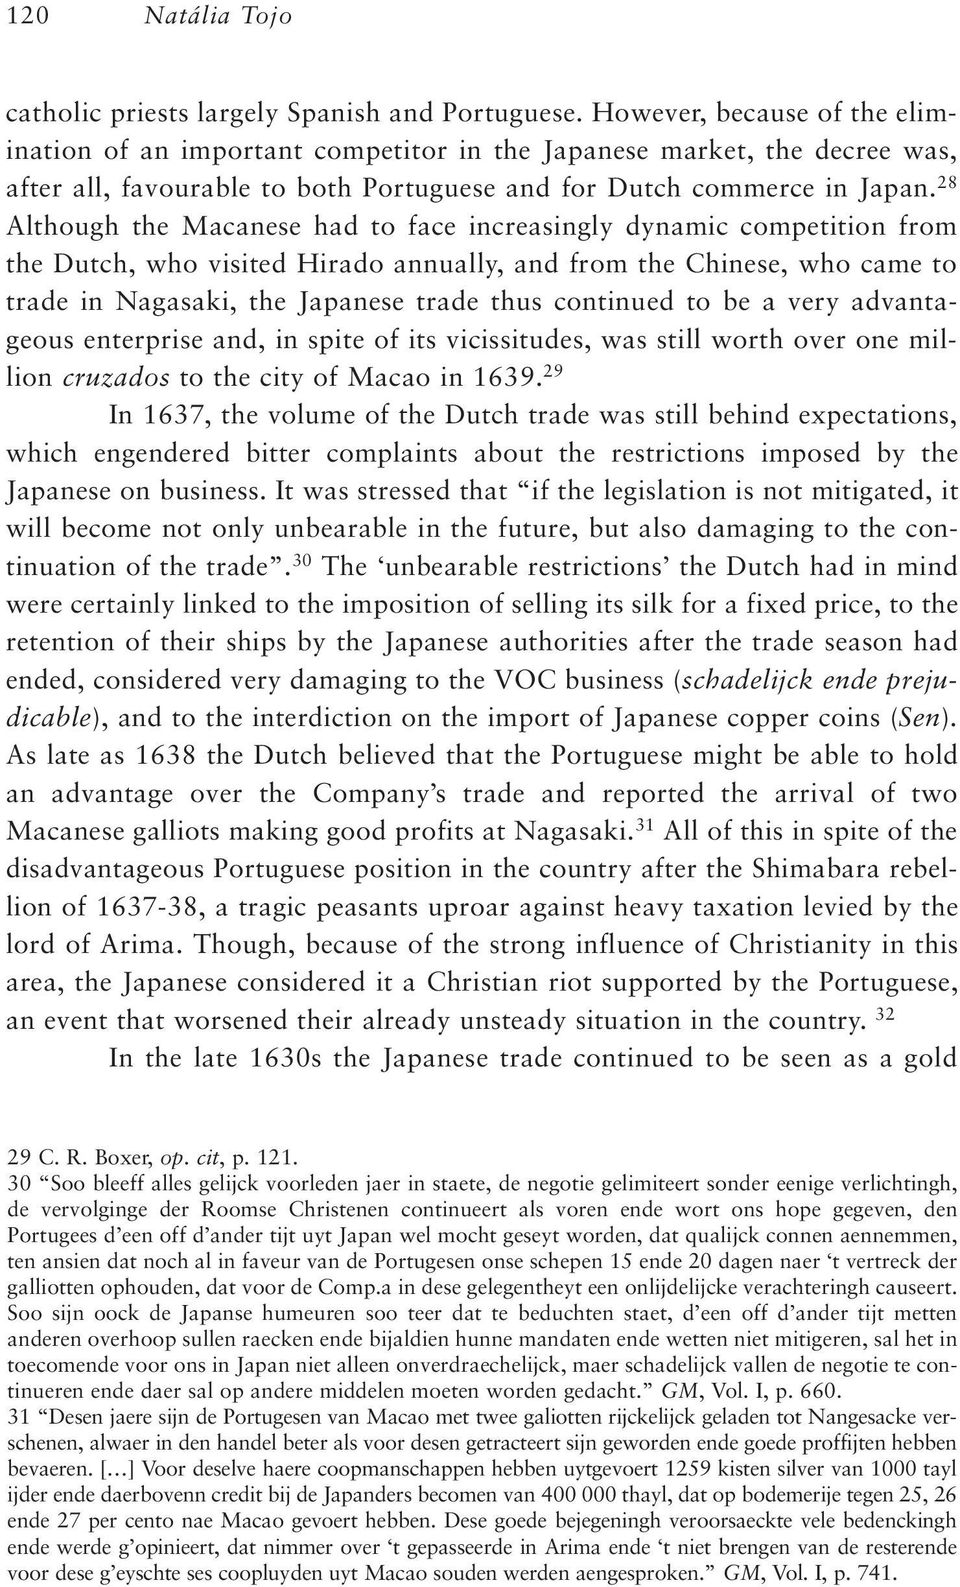 28 Although the Macanese had to face increasingly dynamic competition from the Dutch, who visited Hirado annually, and from the Chinese, who came to trade in Nagasaki, the Japanese trade thus